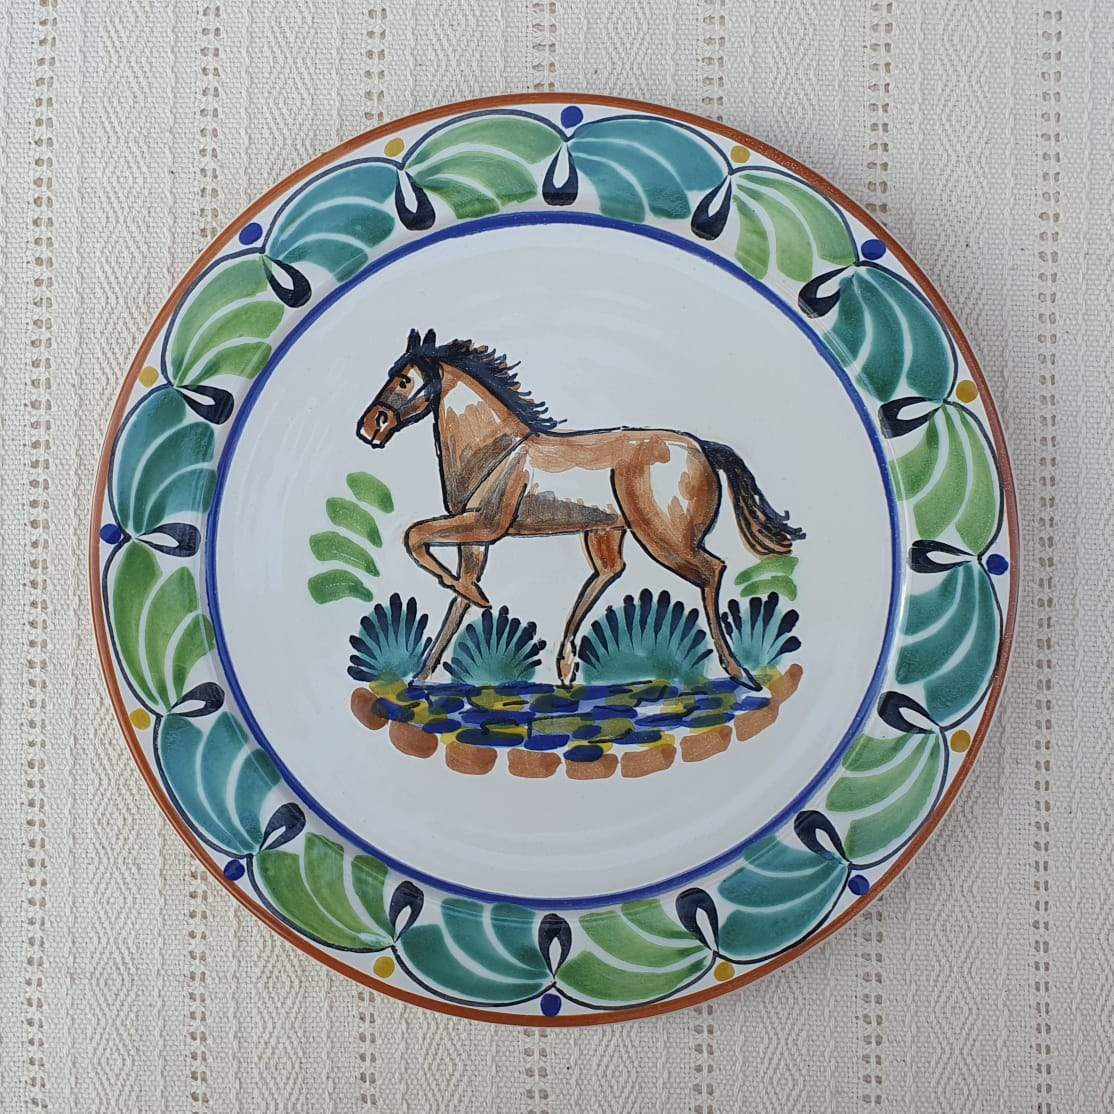 Horse Charger Dinner Plate 12